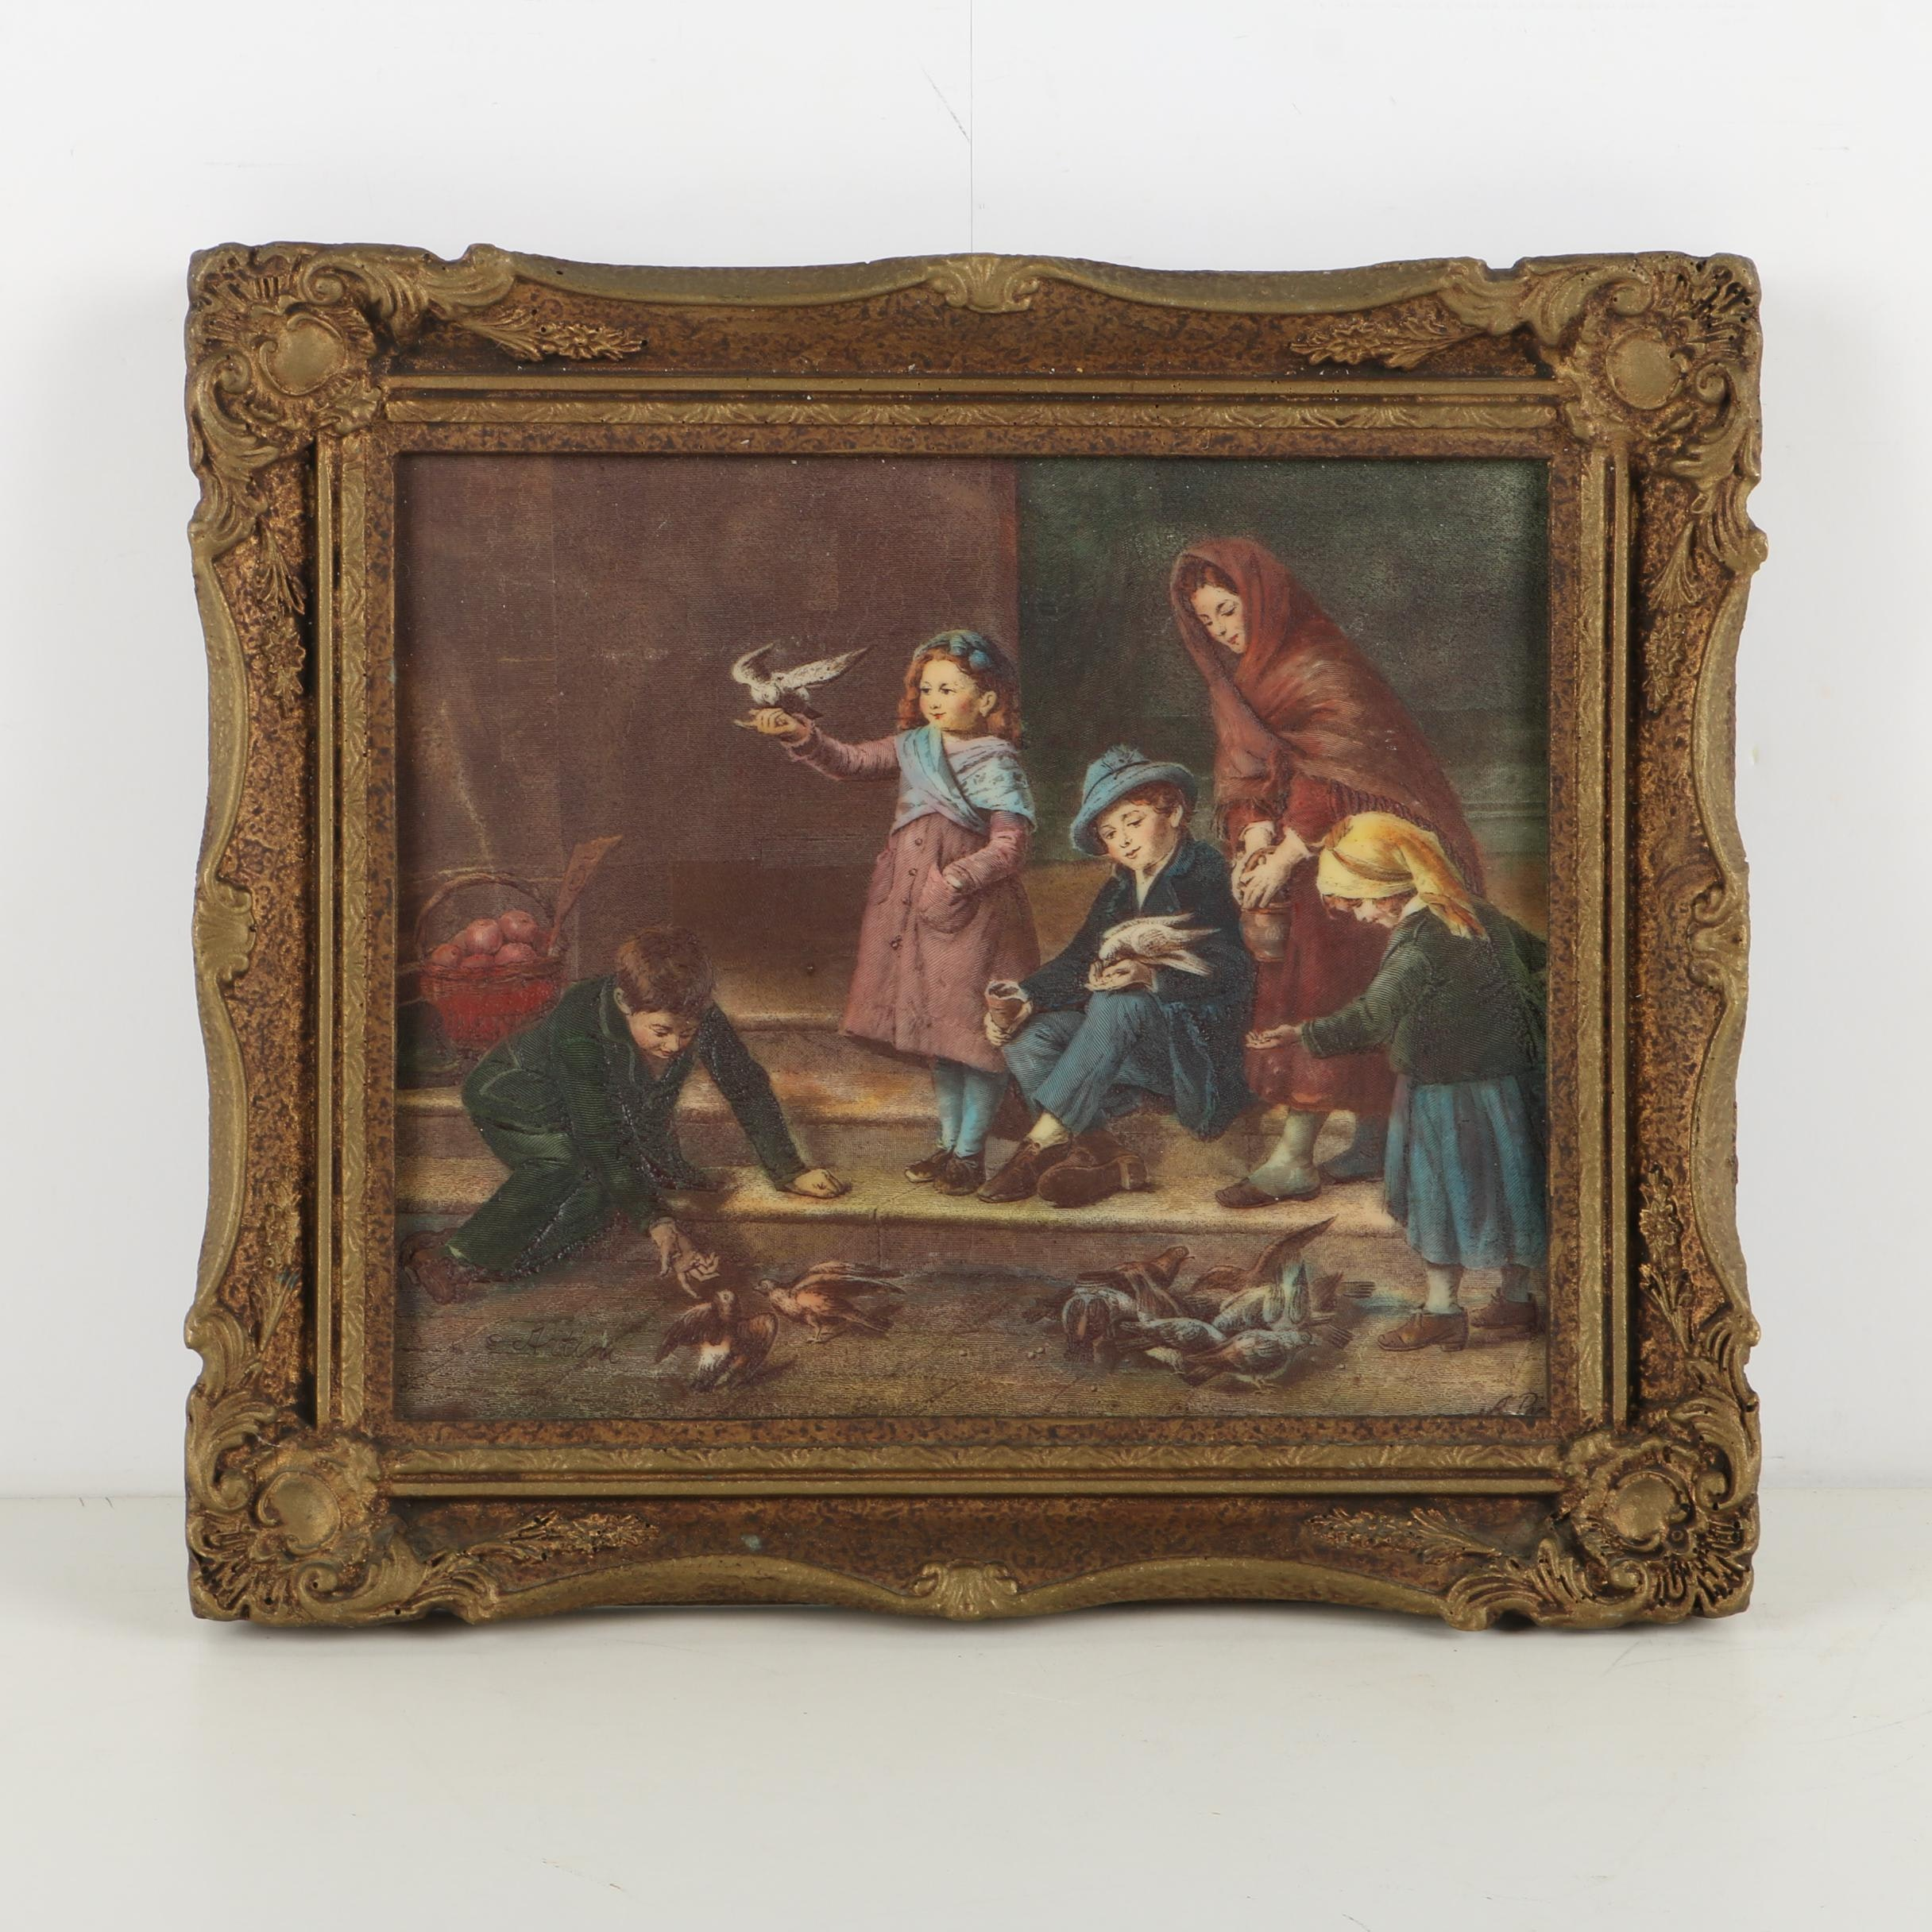 Artini Hand-Painted Resin Engraving of an Outdoor Scene